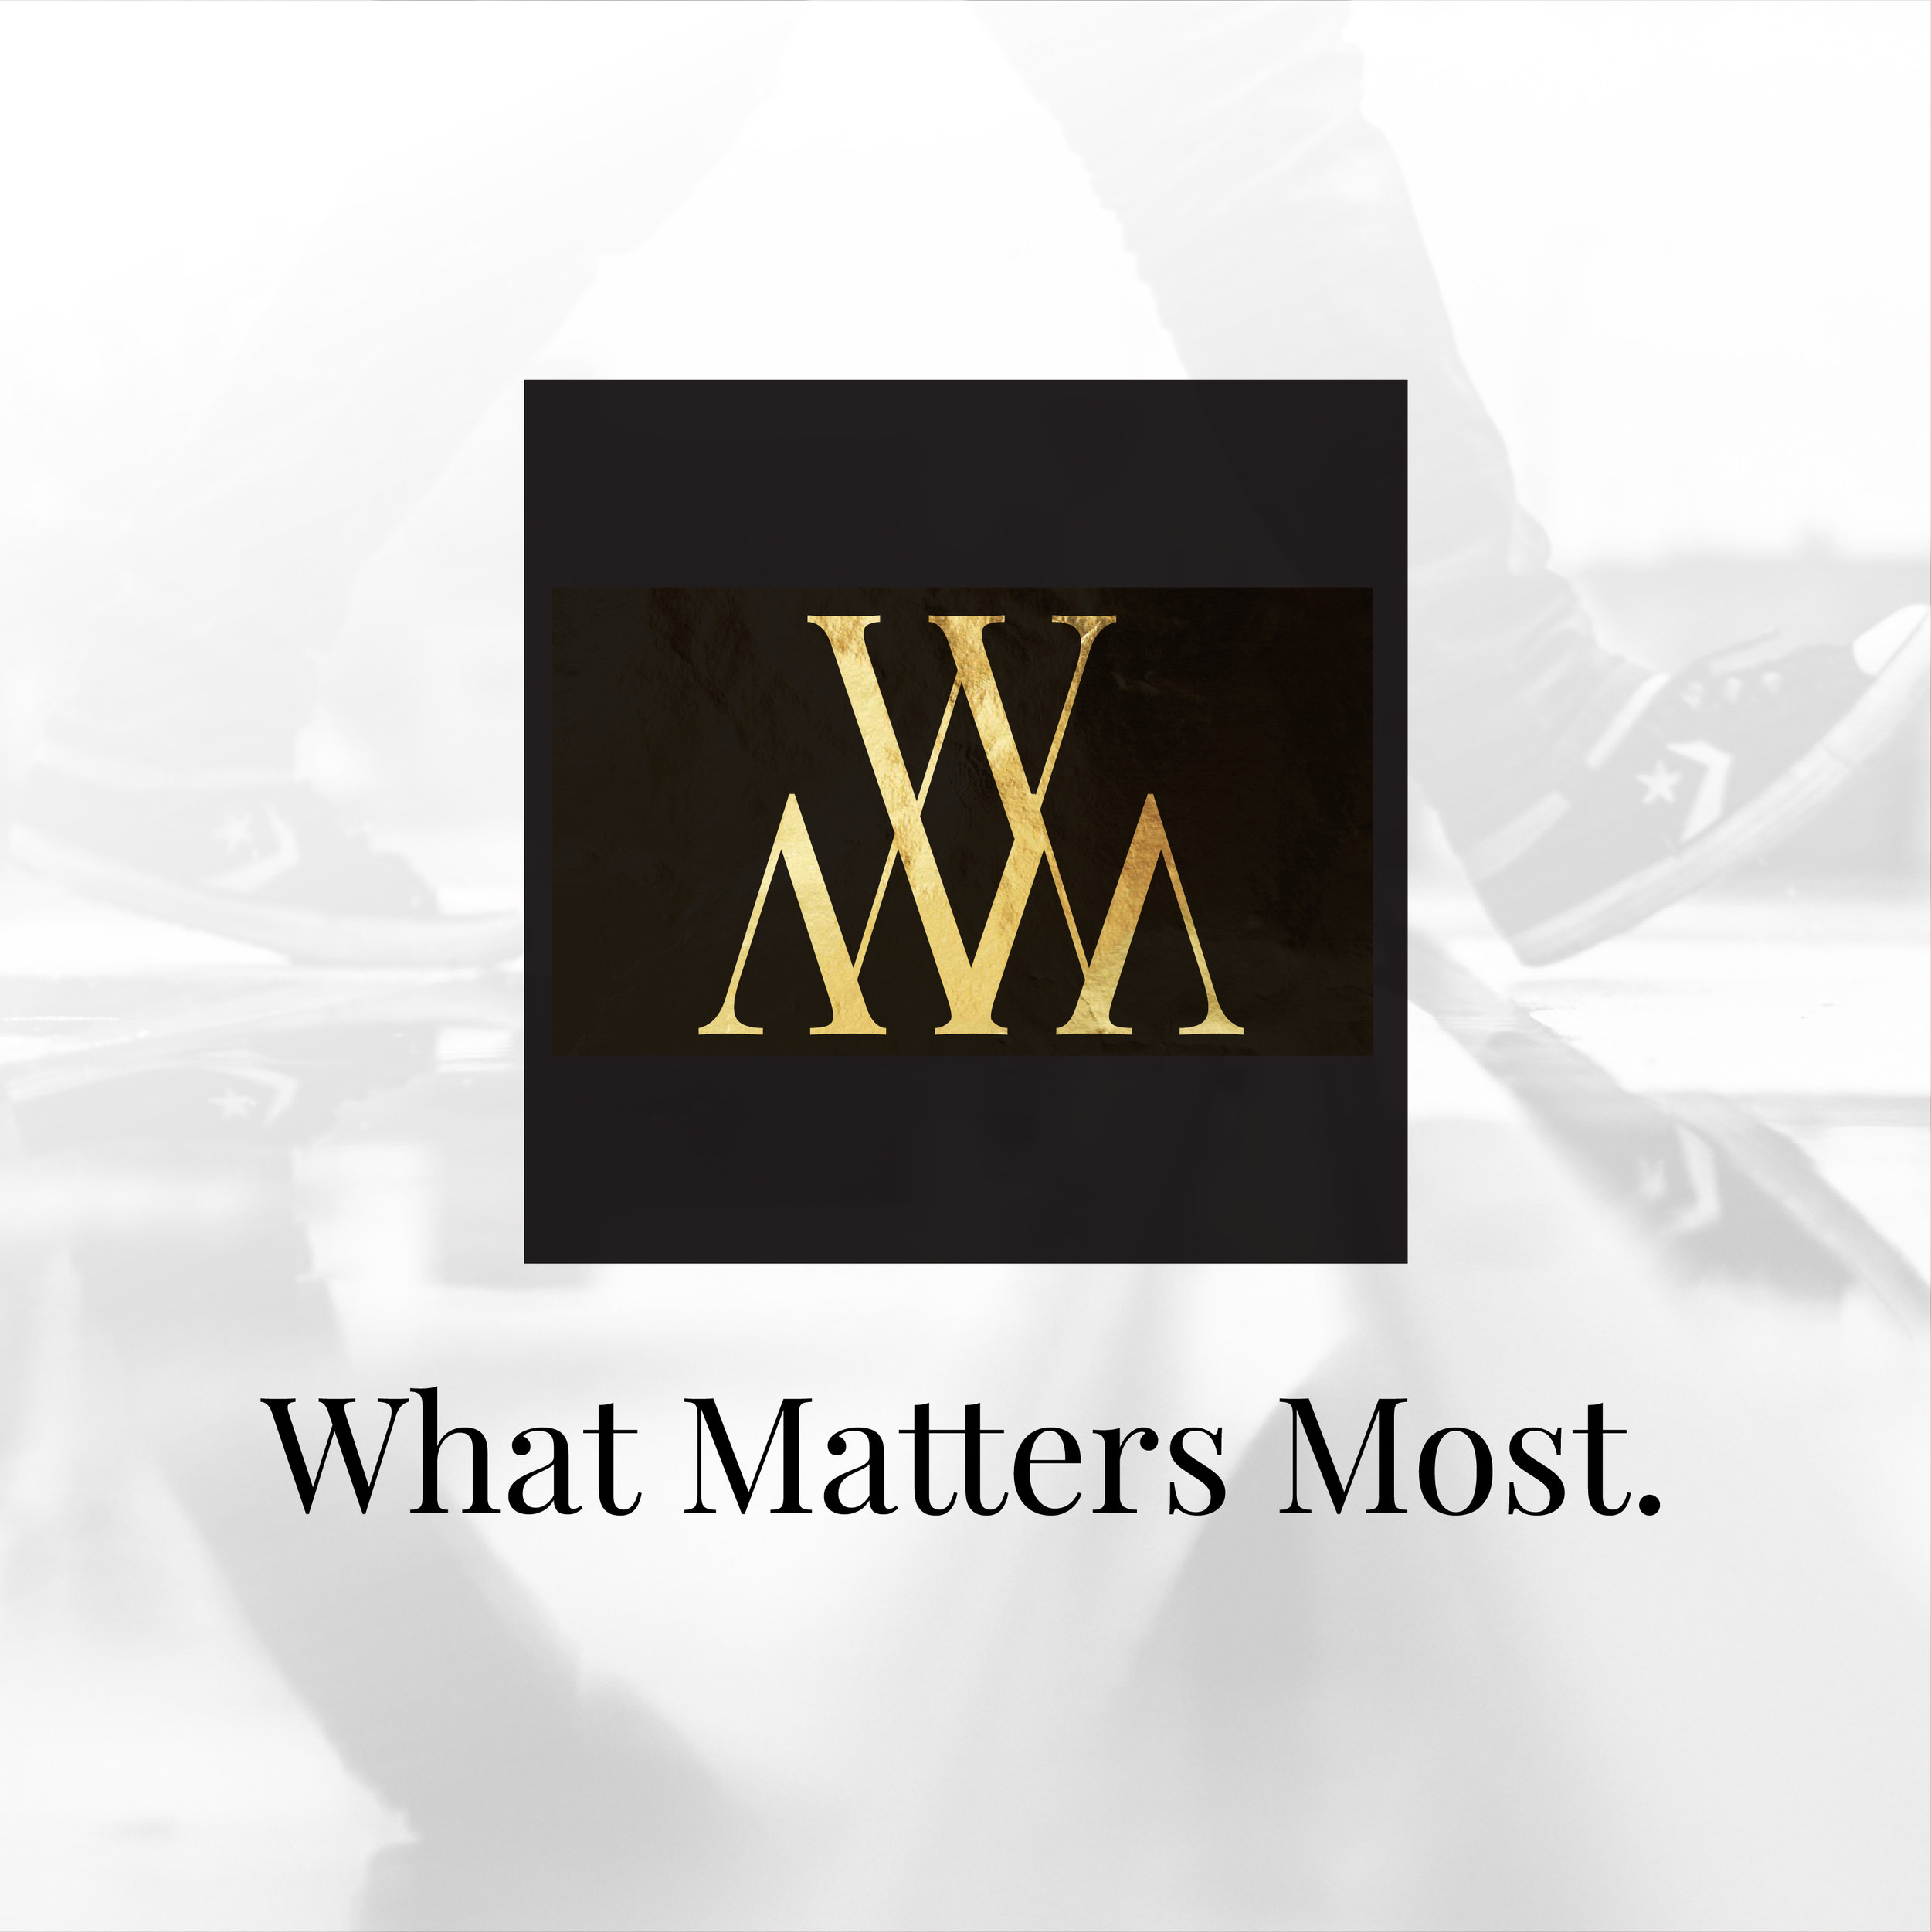 What Matters Most_800x800 square.jpg